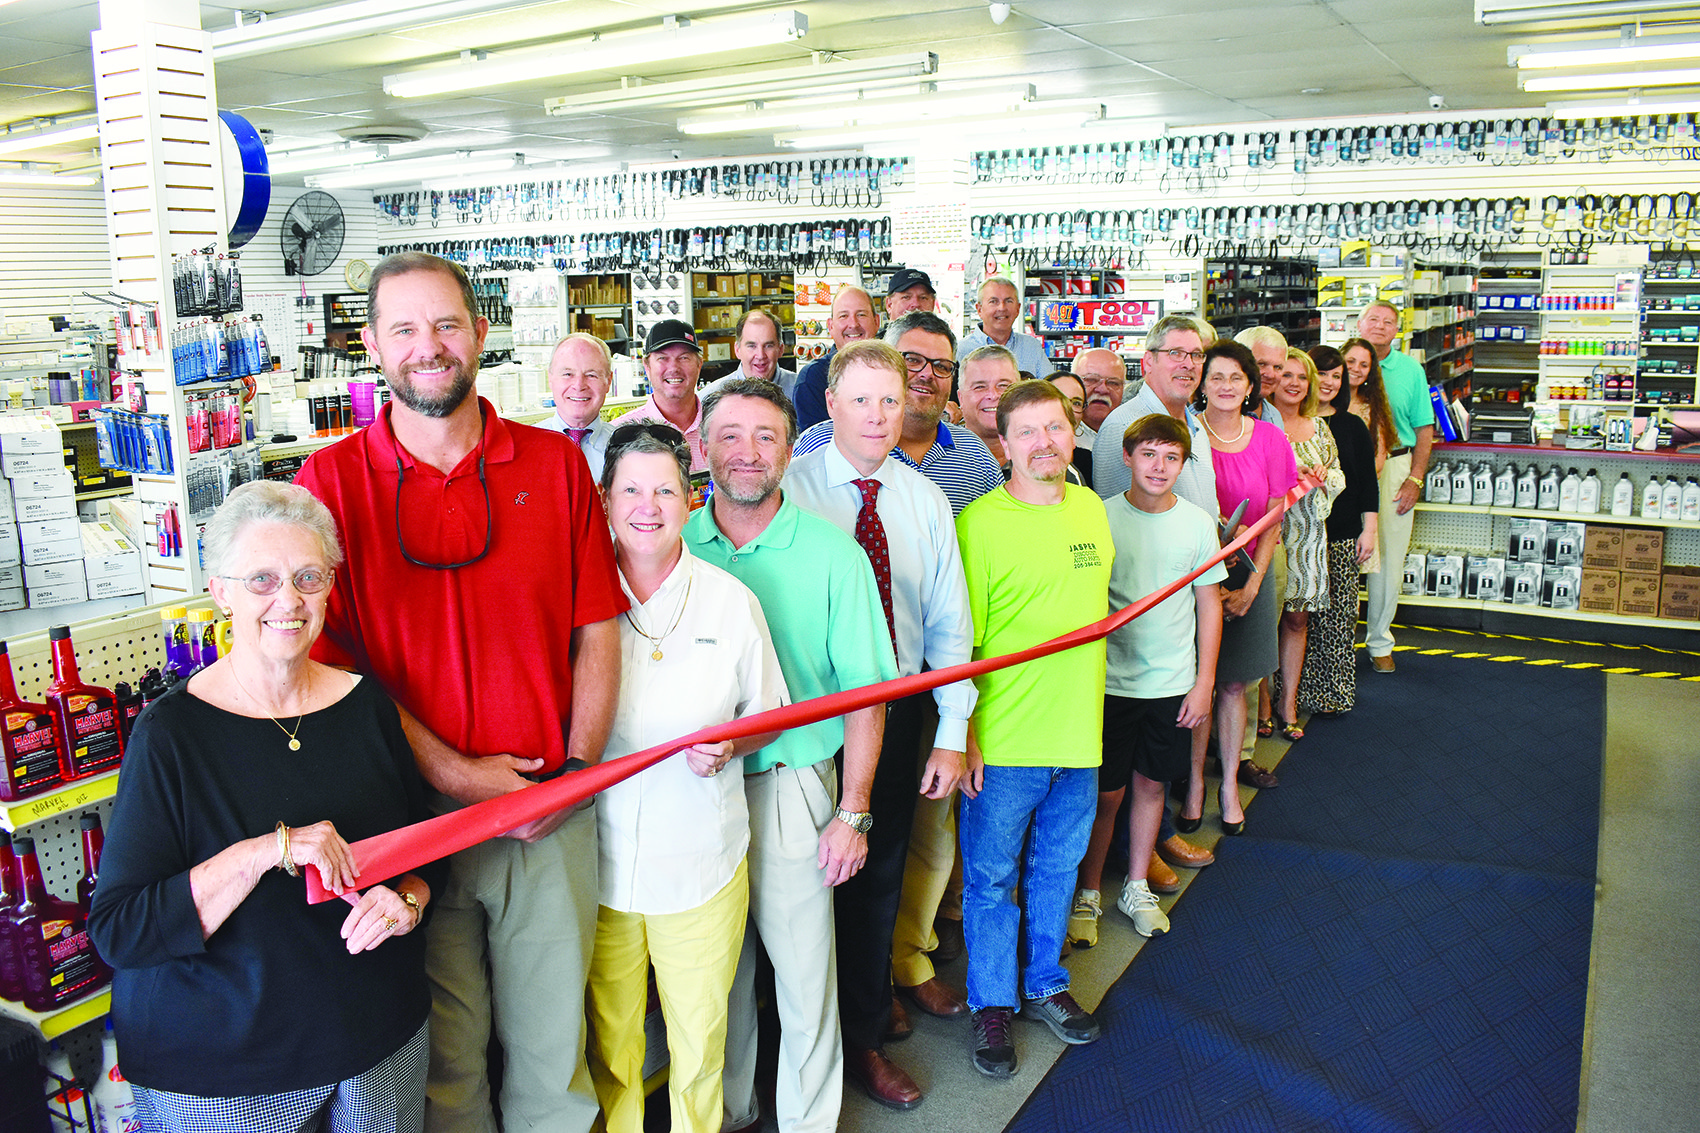 Jasper Discount Auto Parts recently held its ribbon cutting on July 26 after moving the old Lawson Auto Parts to Parkland Shopping Center with a new name.